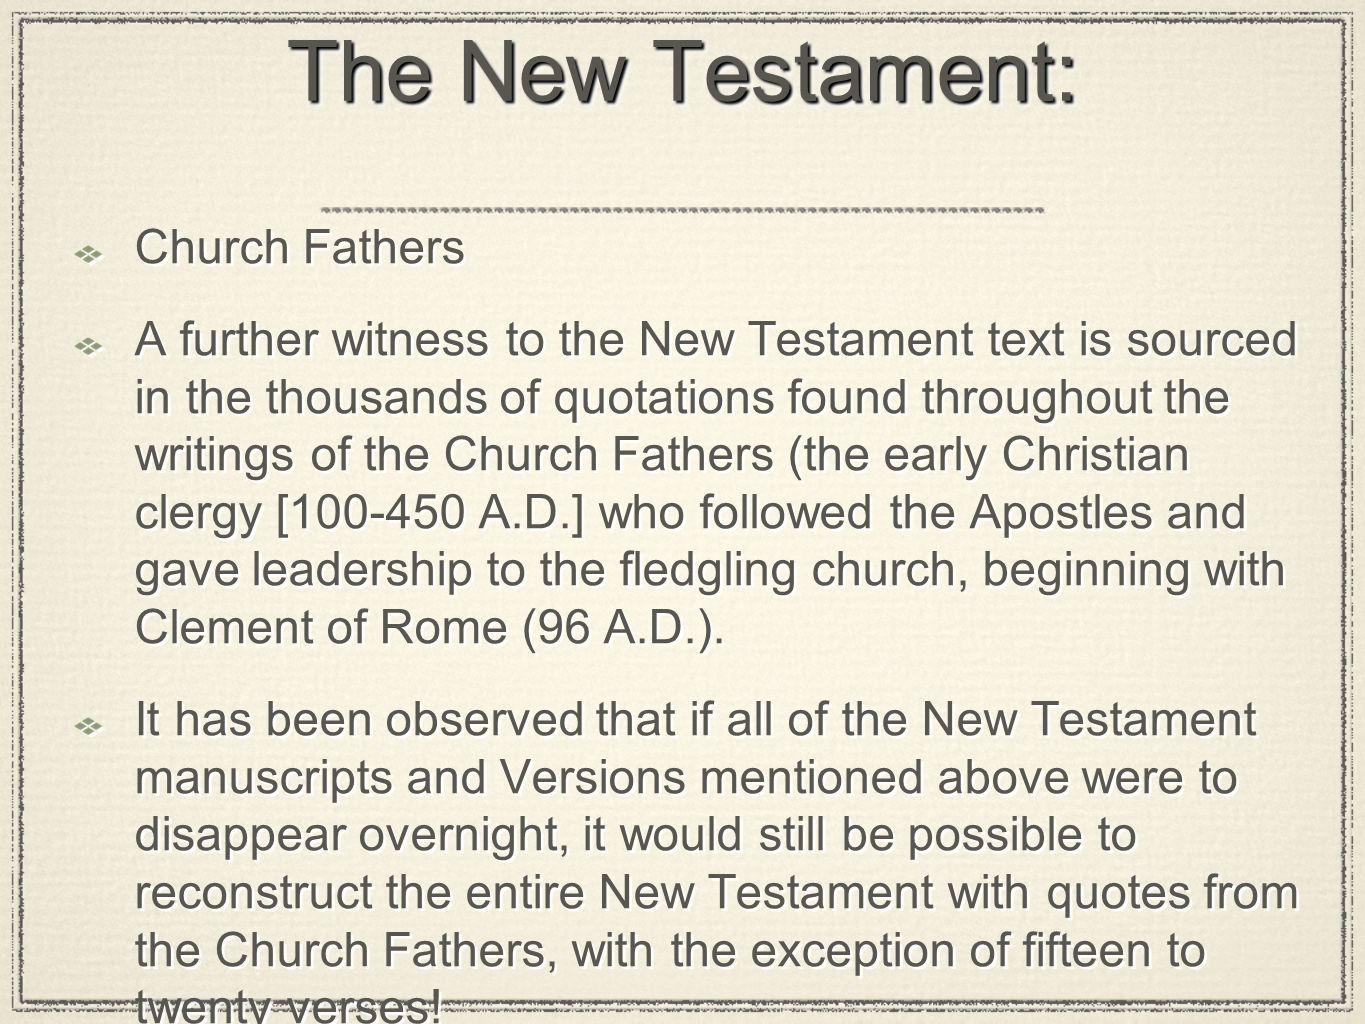 The New Testament: Church Fathers